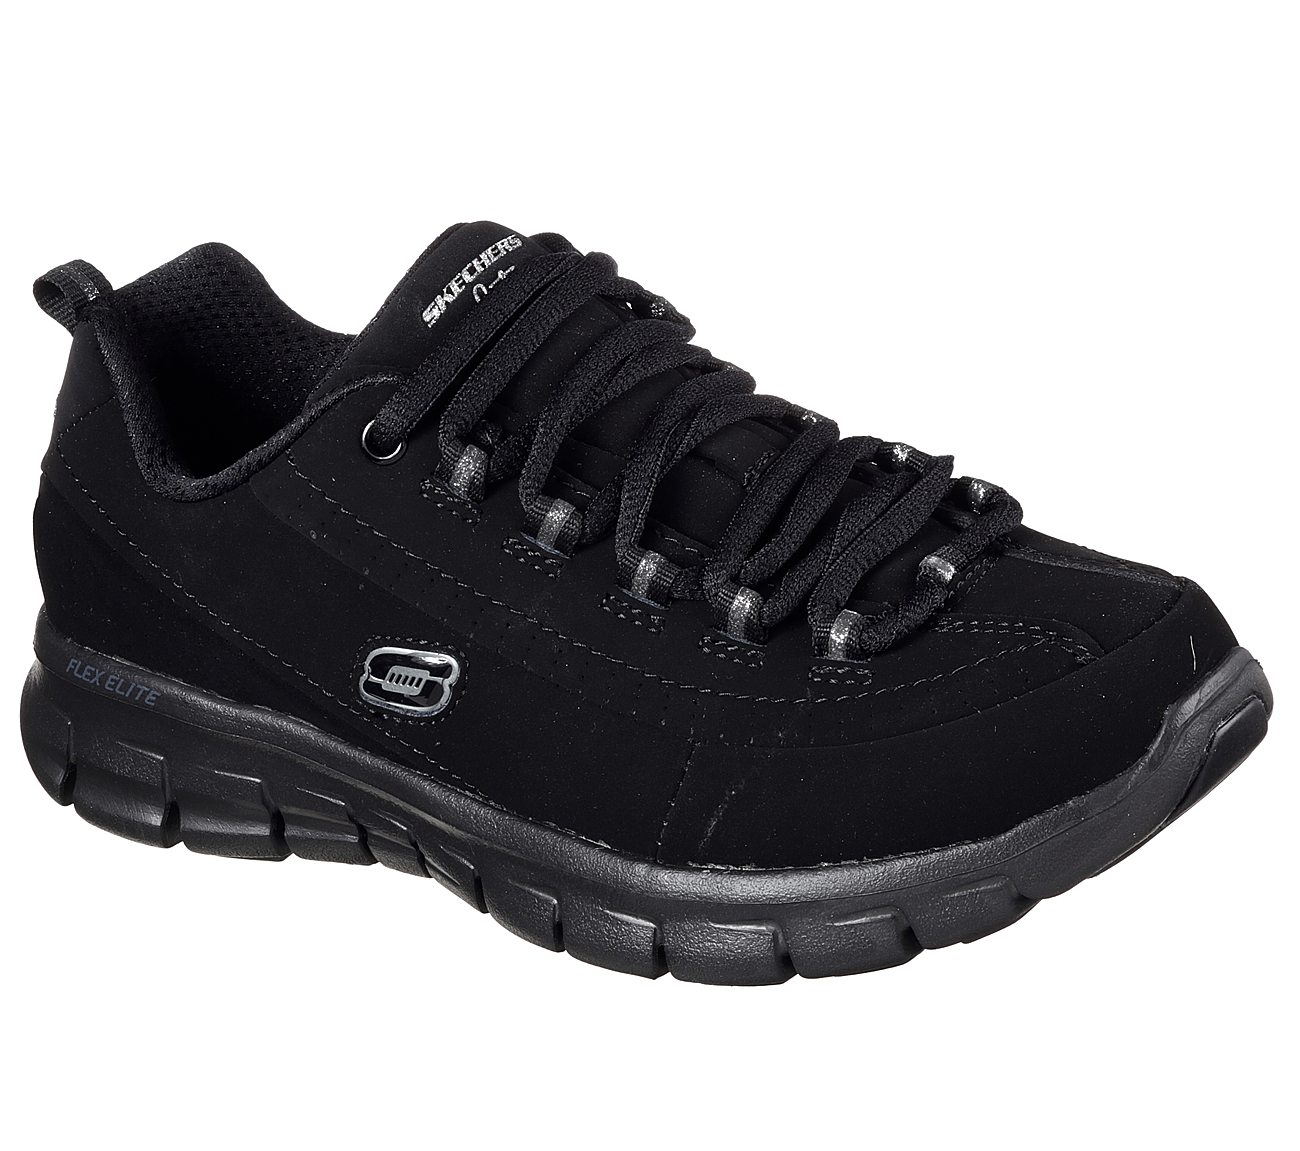 11717 EW Wide Fit Black Skechers shoes Women's Sporty Casual Memory Foam leather